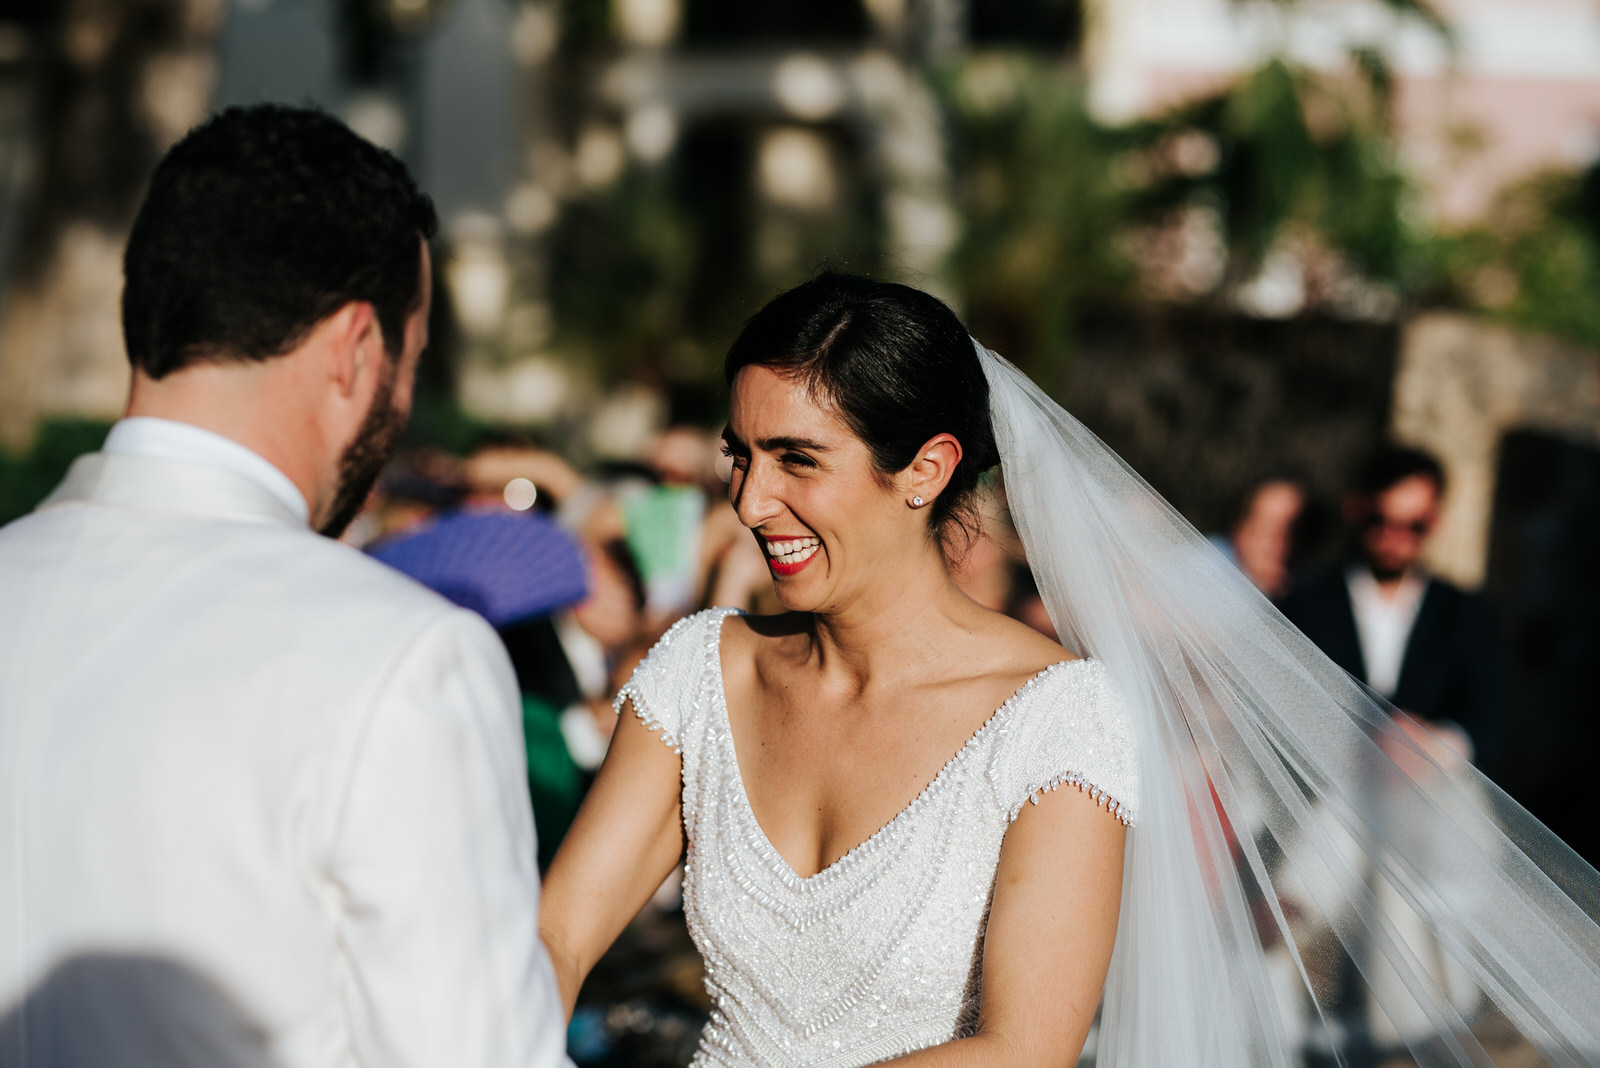 Bride cannot contain her laughter while holding hands with groom